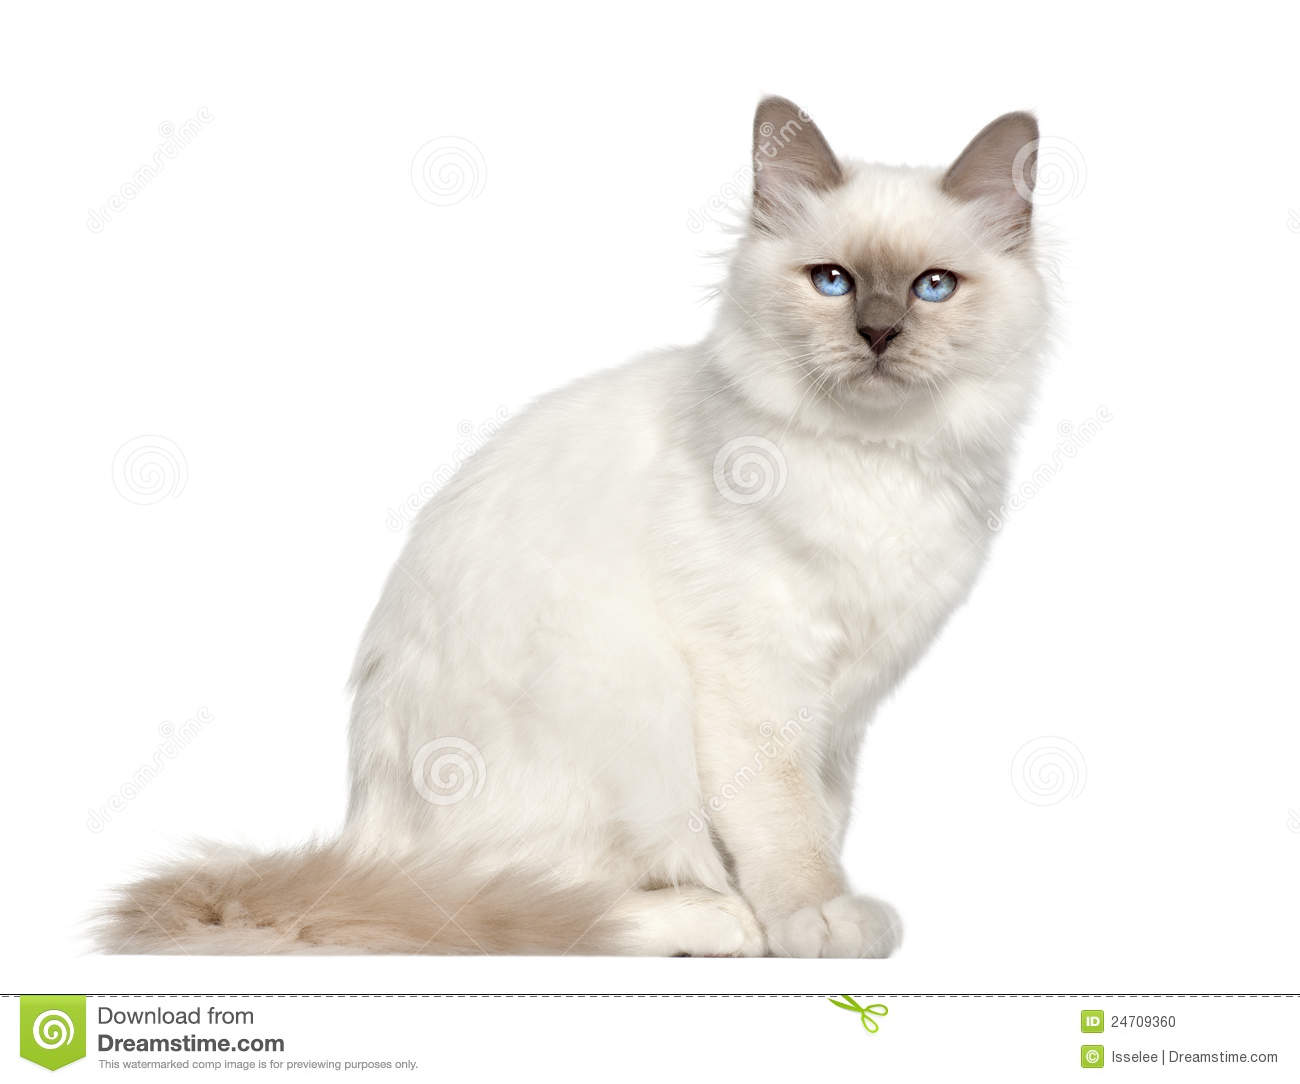 Birman cat clipart.